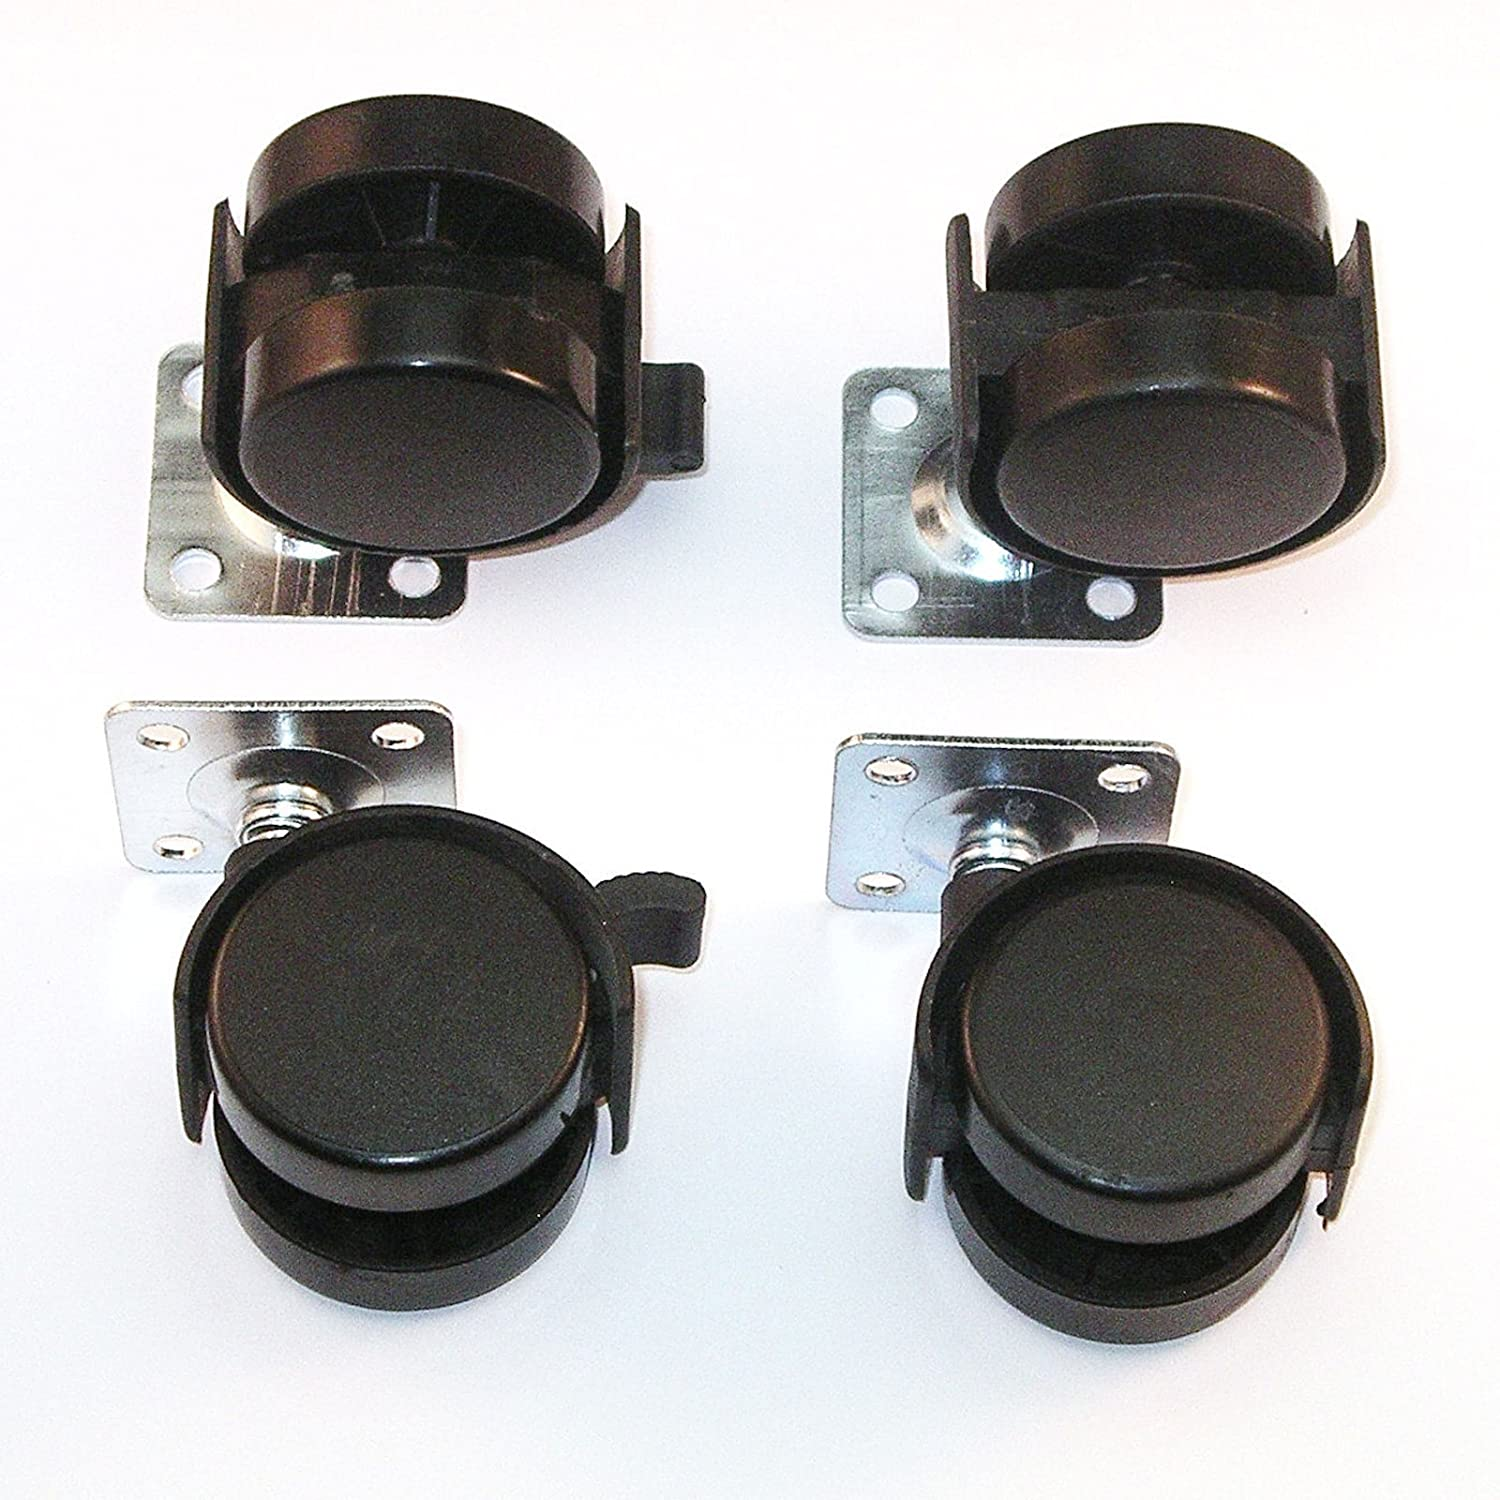 1 Set (4 pieces) SO-TECH® Swivel Castor for Furniture Diameter 40 mm (2 lockable) SOTECH 40020/21